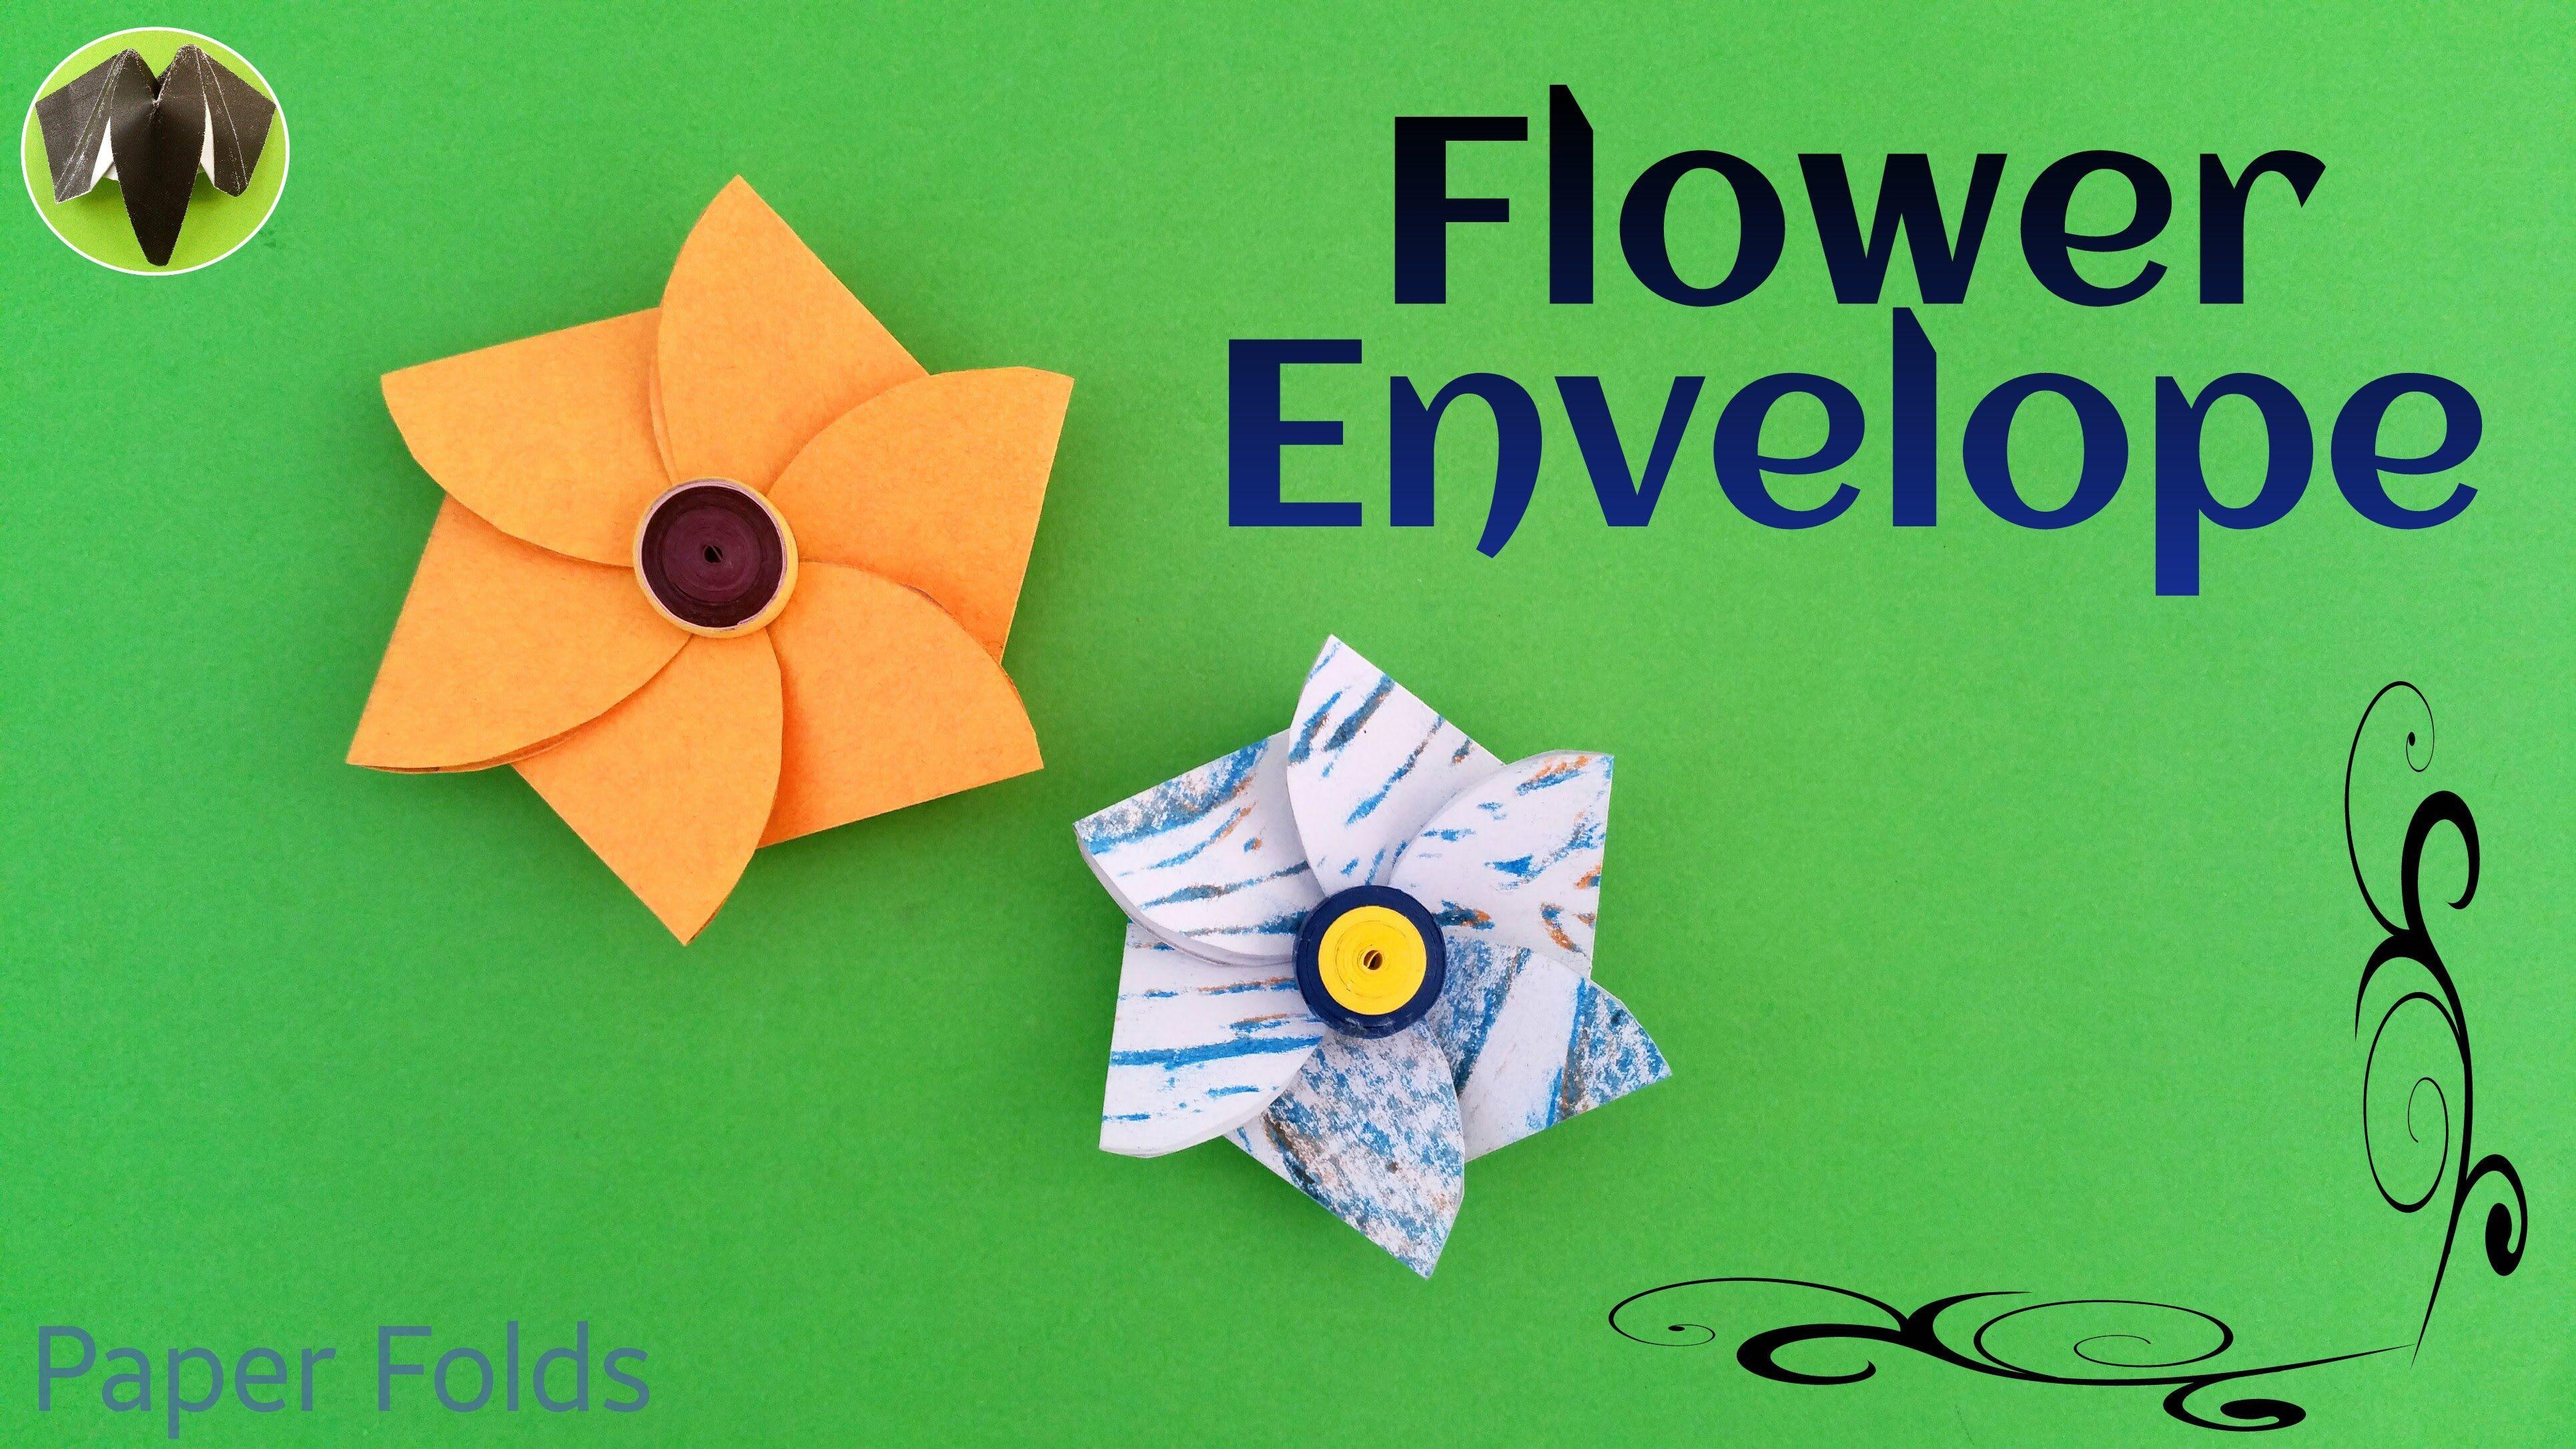 How To Make A Paper Flower Envelope Useful Craft And Origami